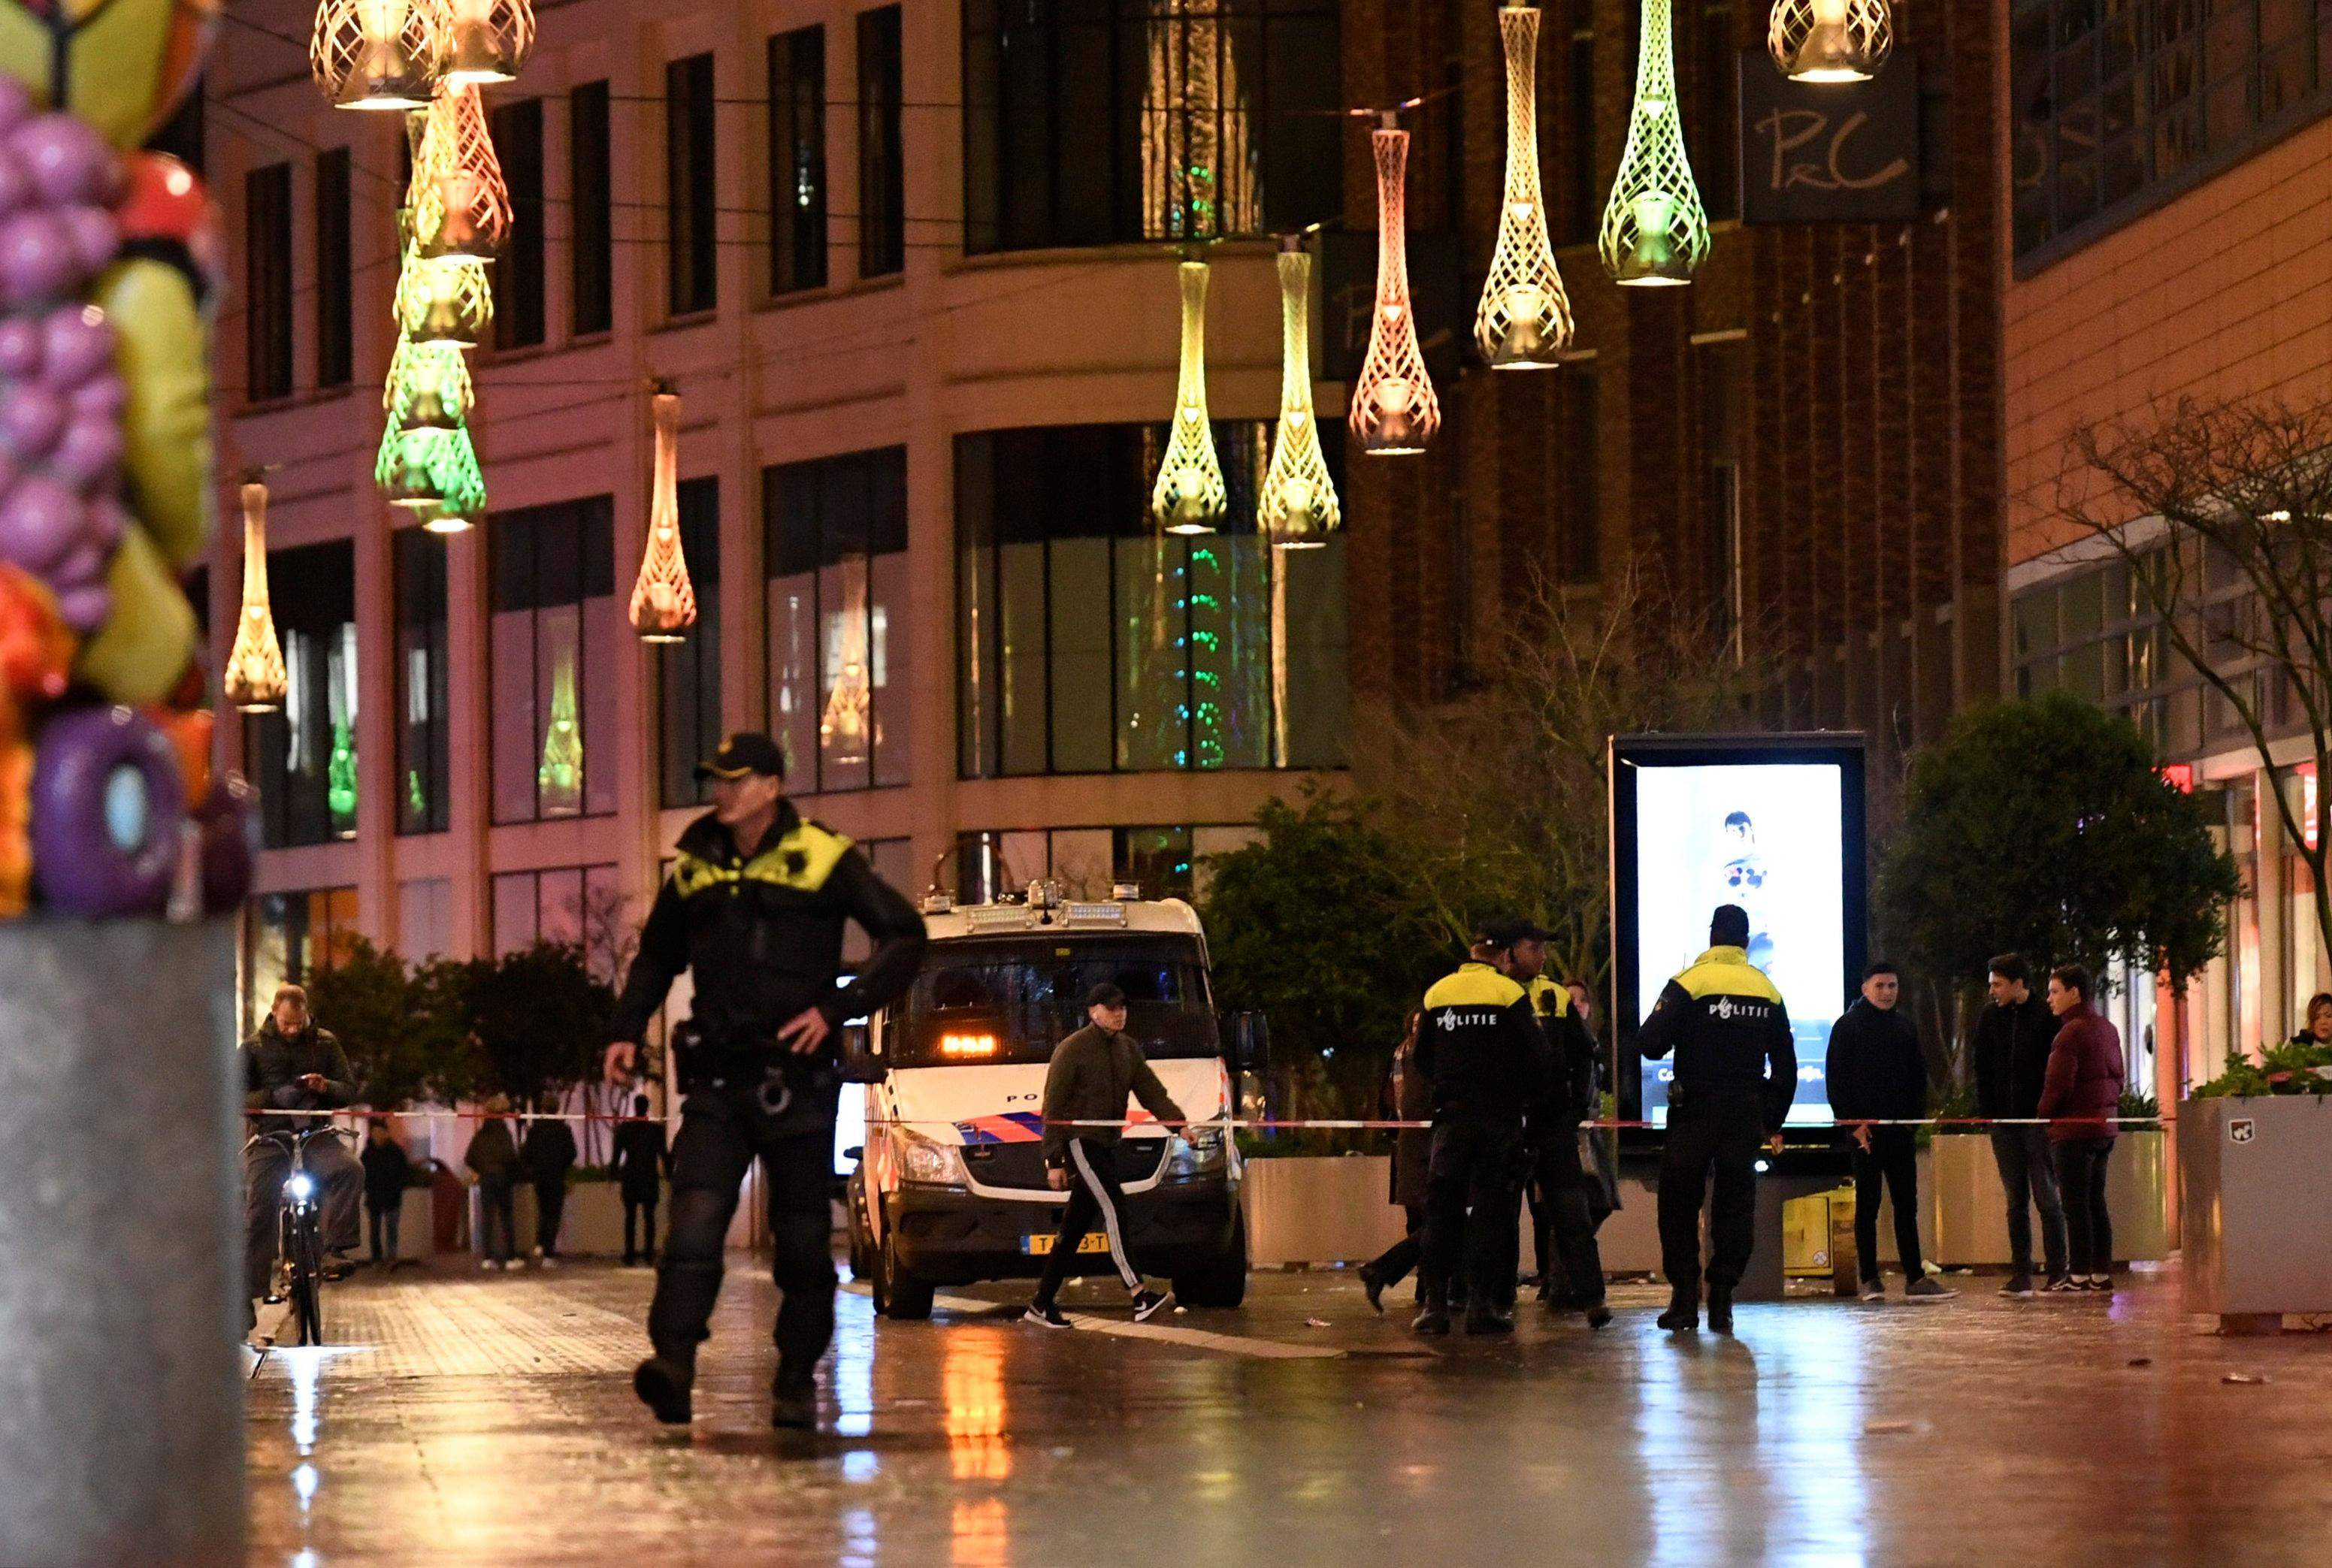 Three youths wounded in stabbing in The Hague, no indication now of...